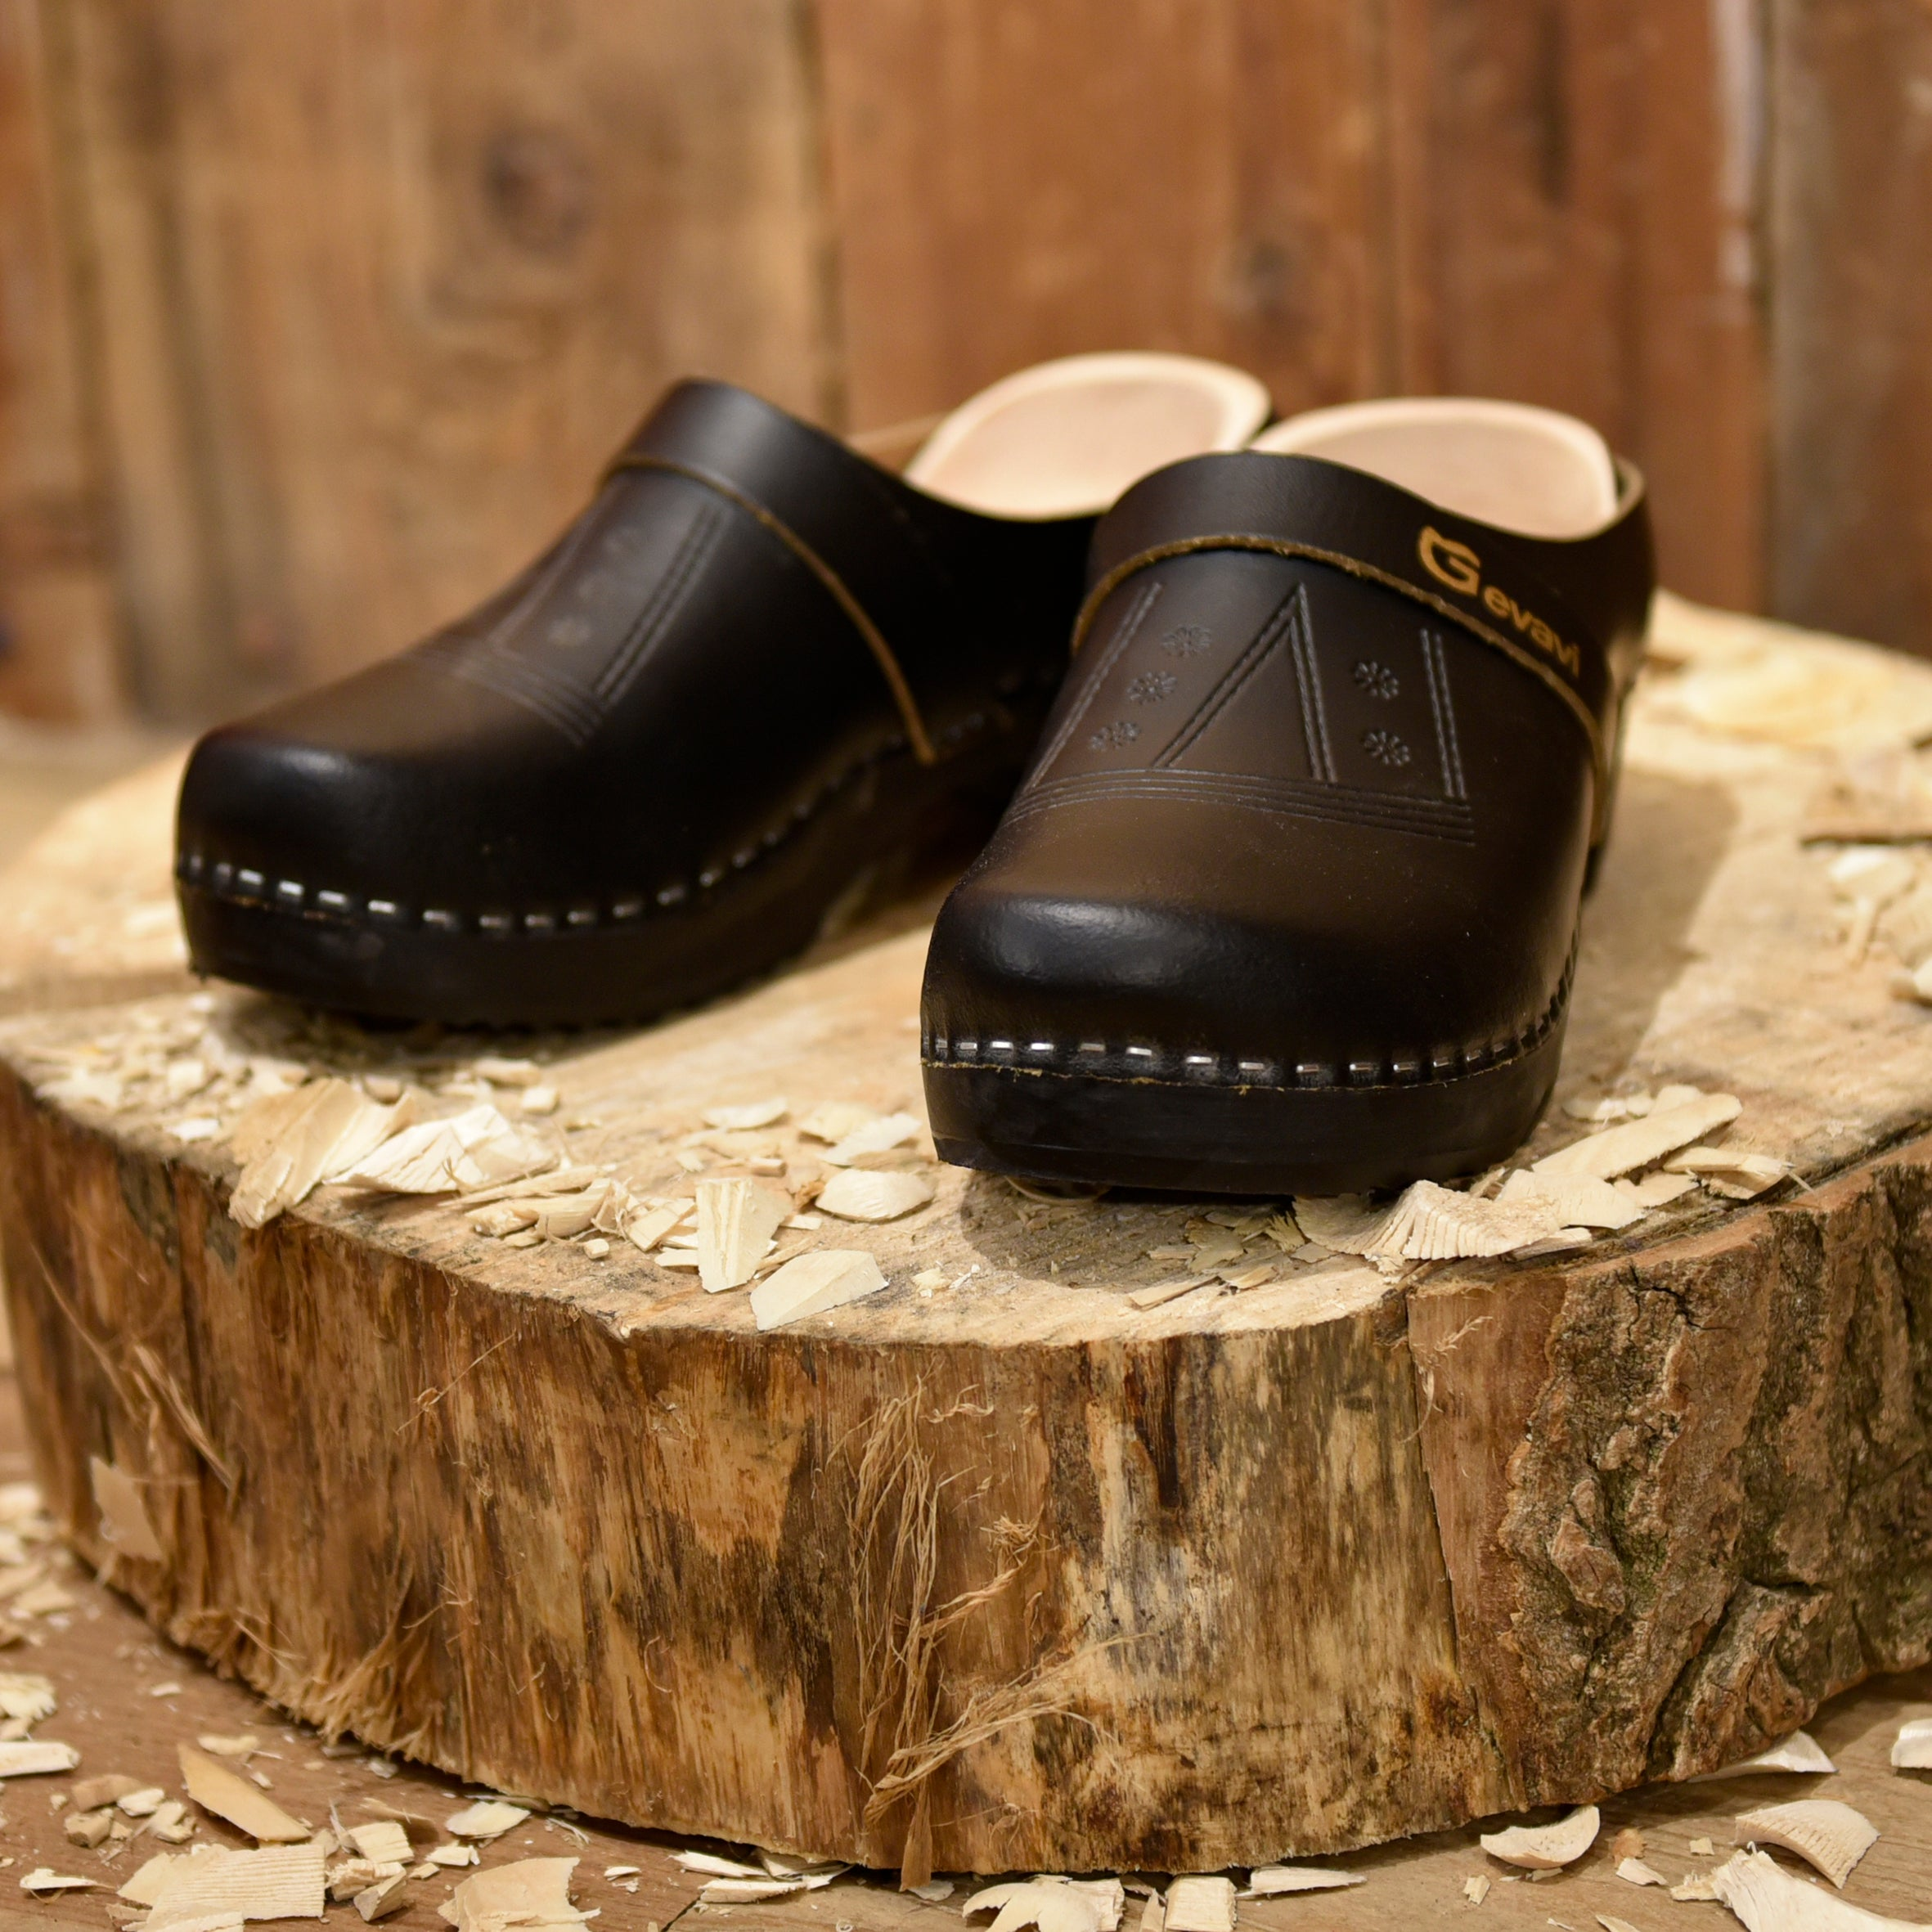 Black Leather Clogs Wooden Back